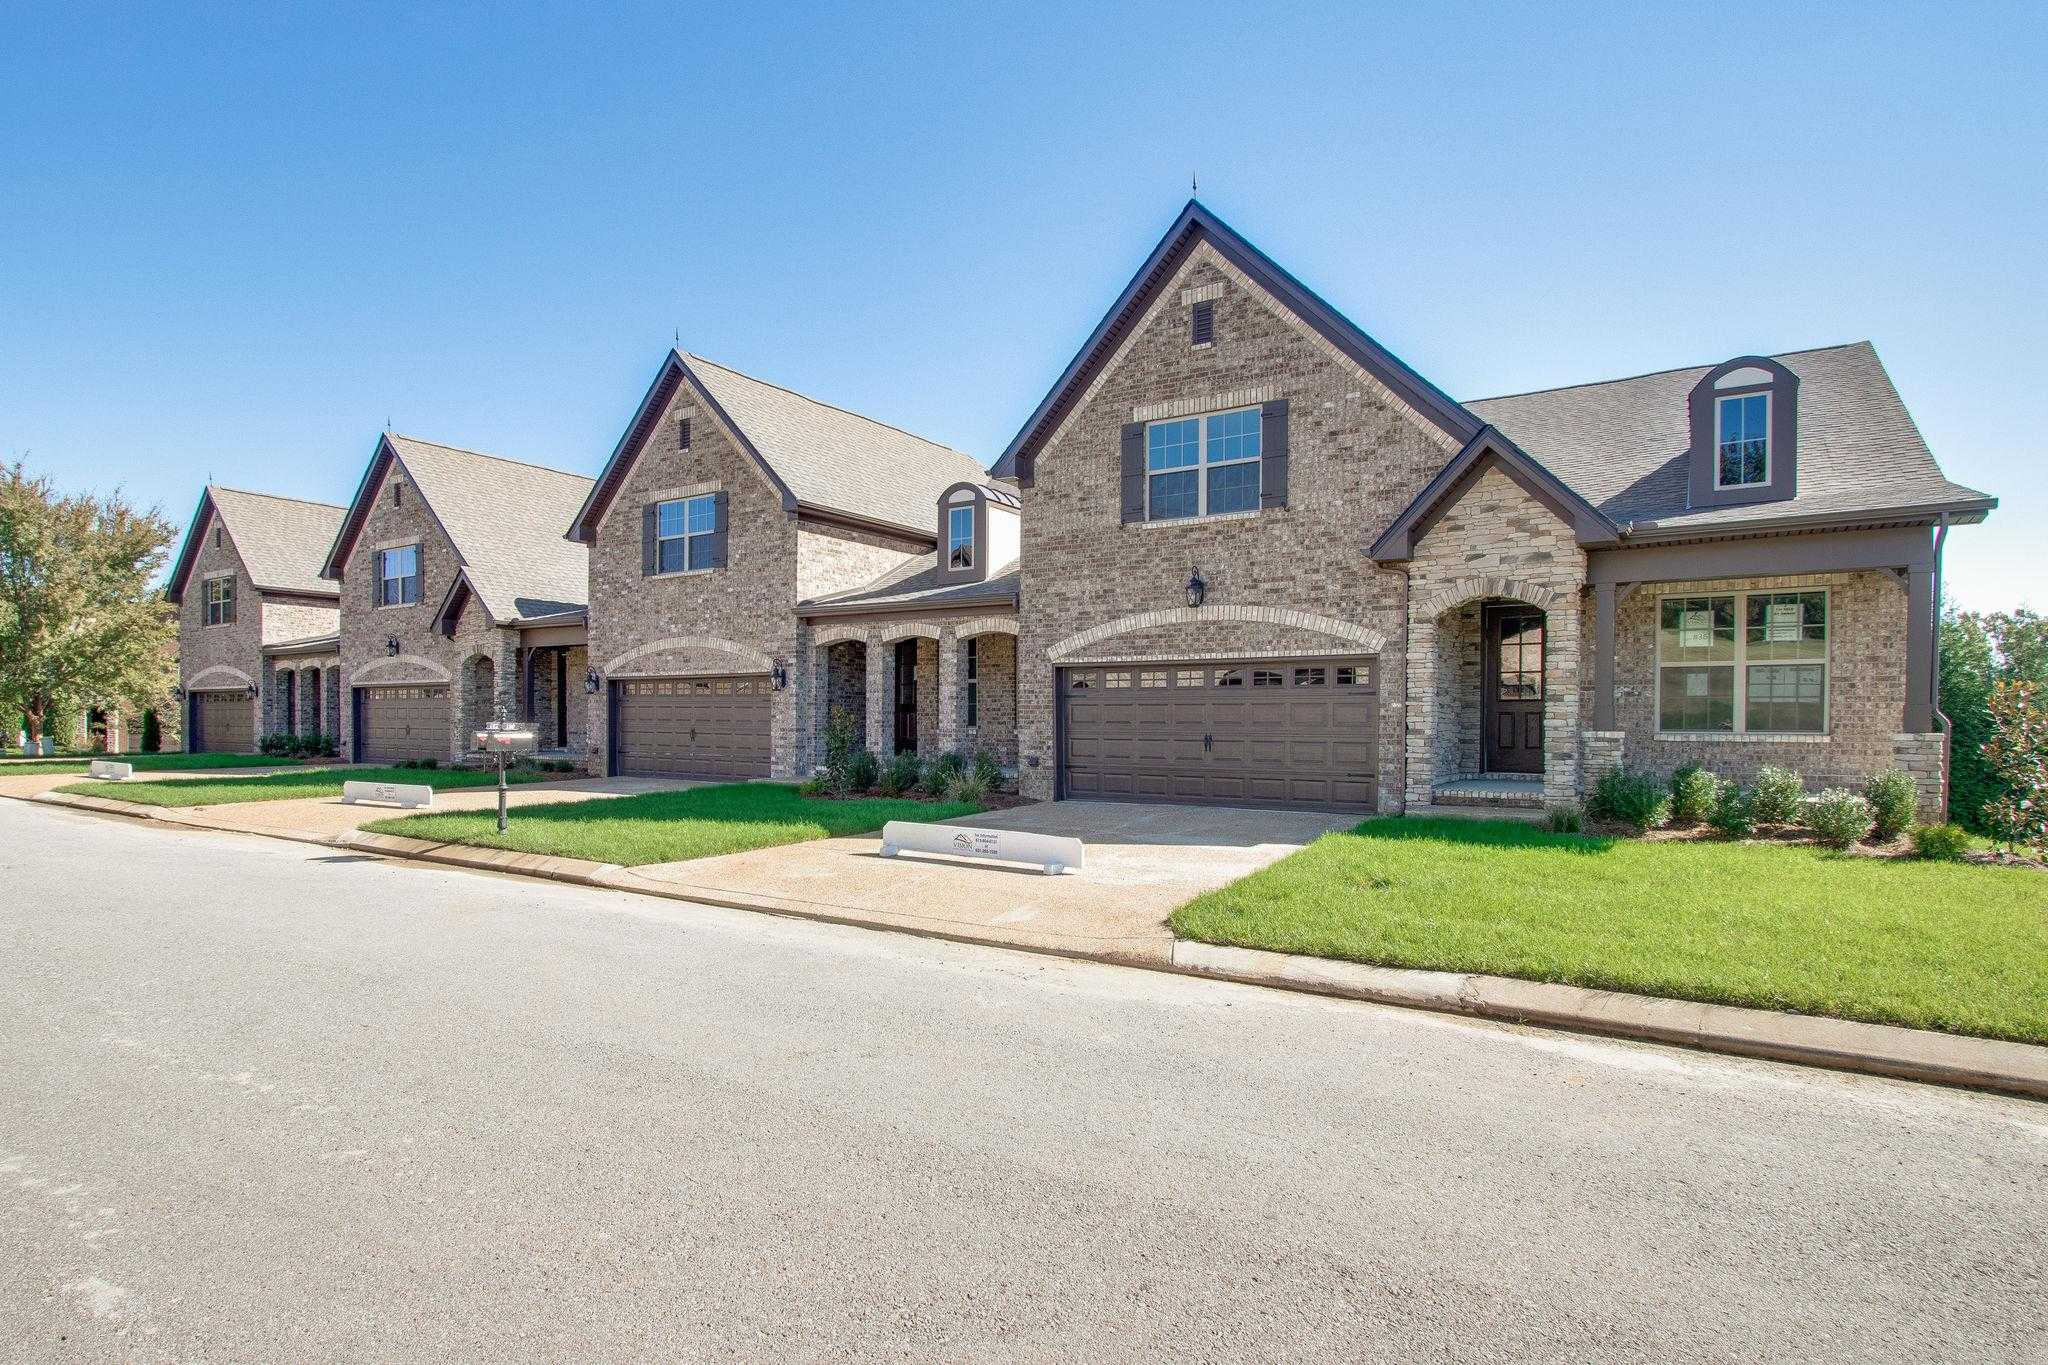 $369,900 - 3Br/3Ba -  for Sale in Five Oaks- The Villages, Lebanon